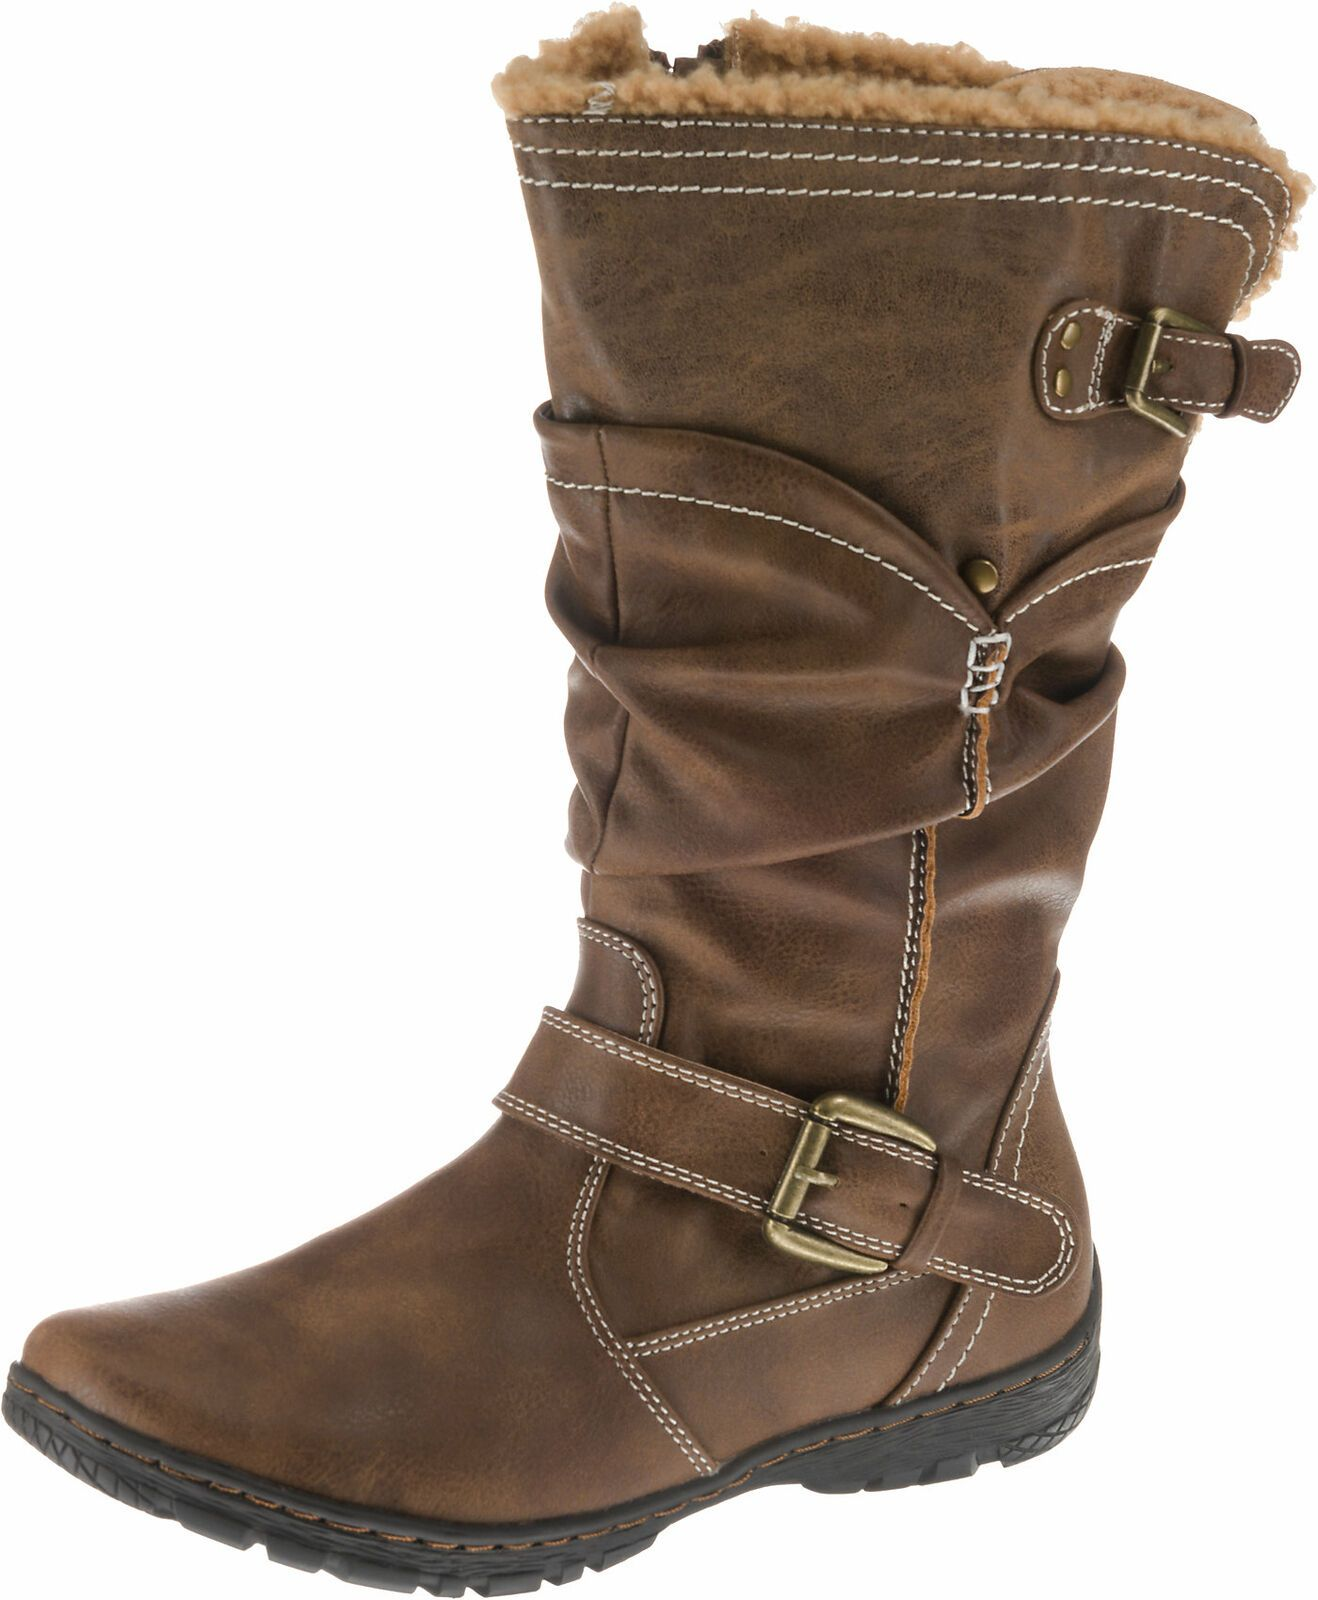 Pin on Winterstiefel Damen